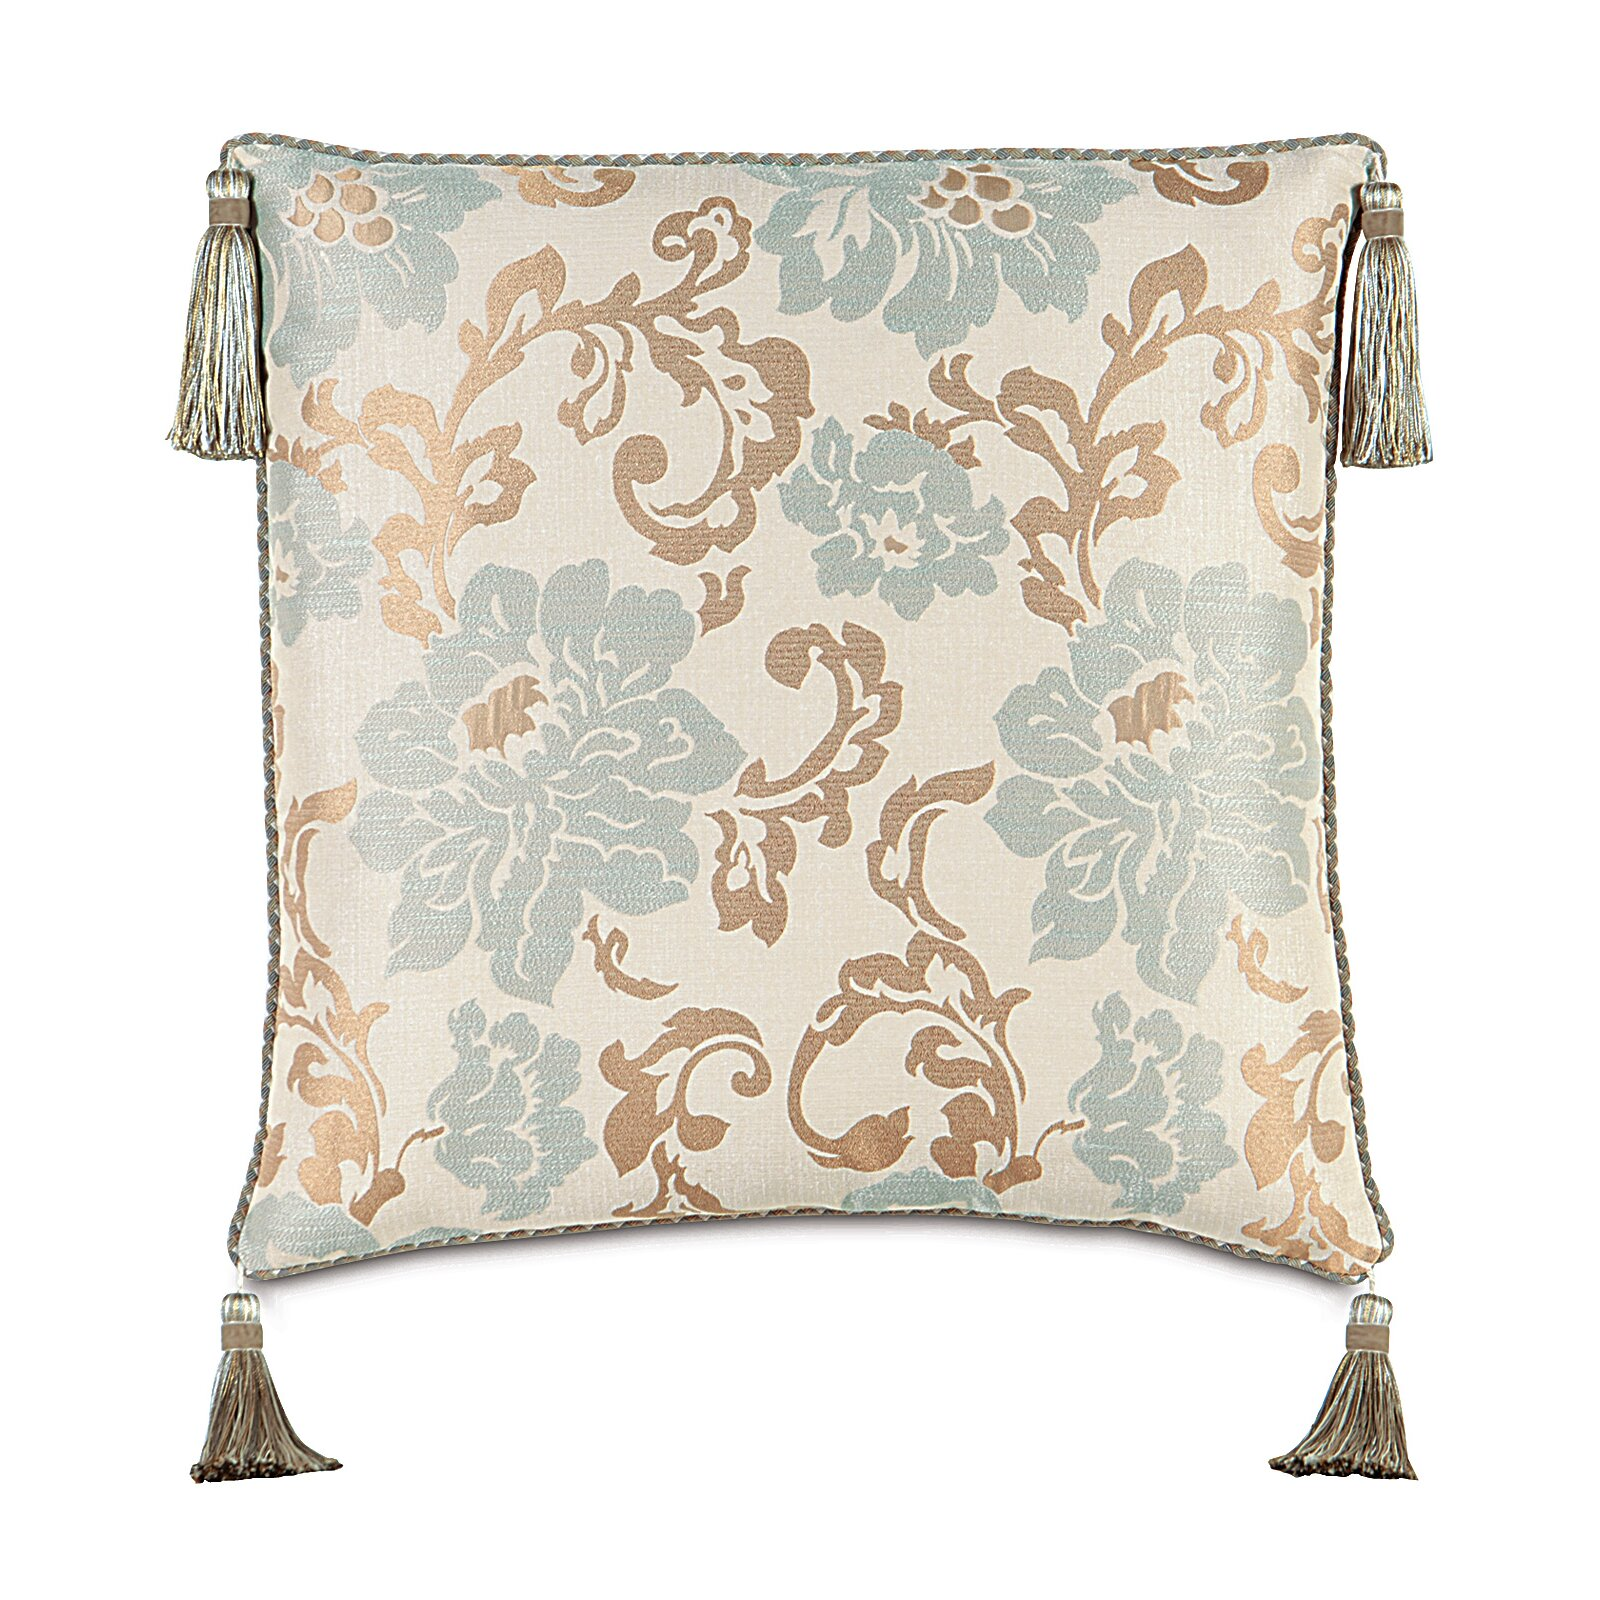 Decorative Pillows With Tassels : Eastern Accents Kinsey Cord and Tassels Euro Pillow Wayfair